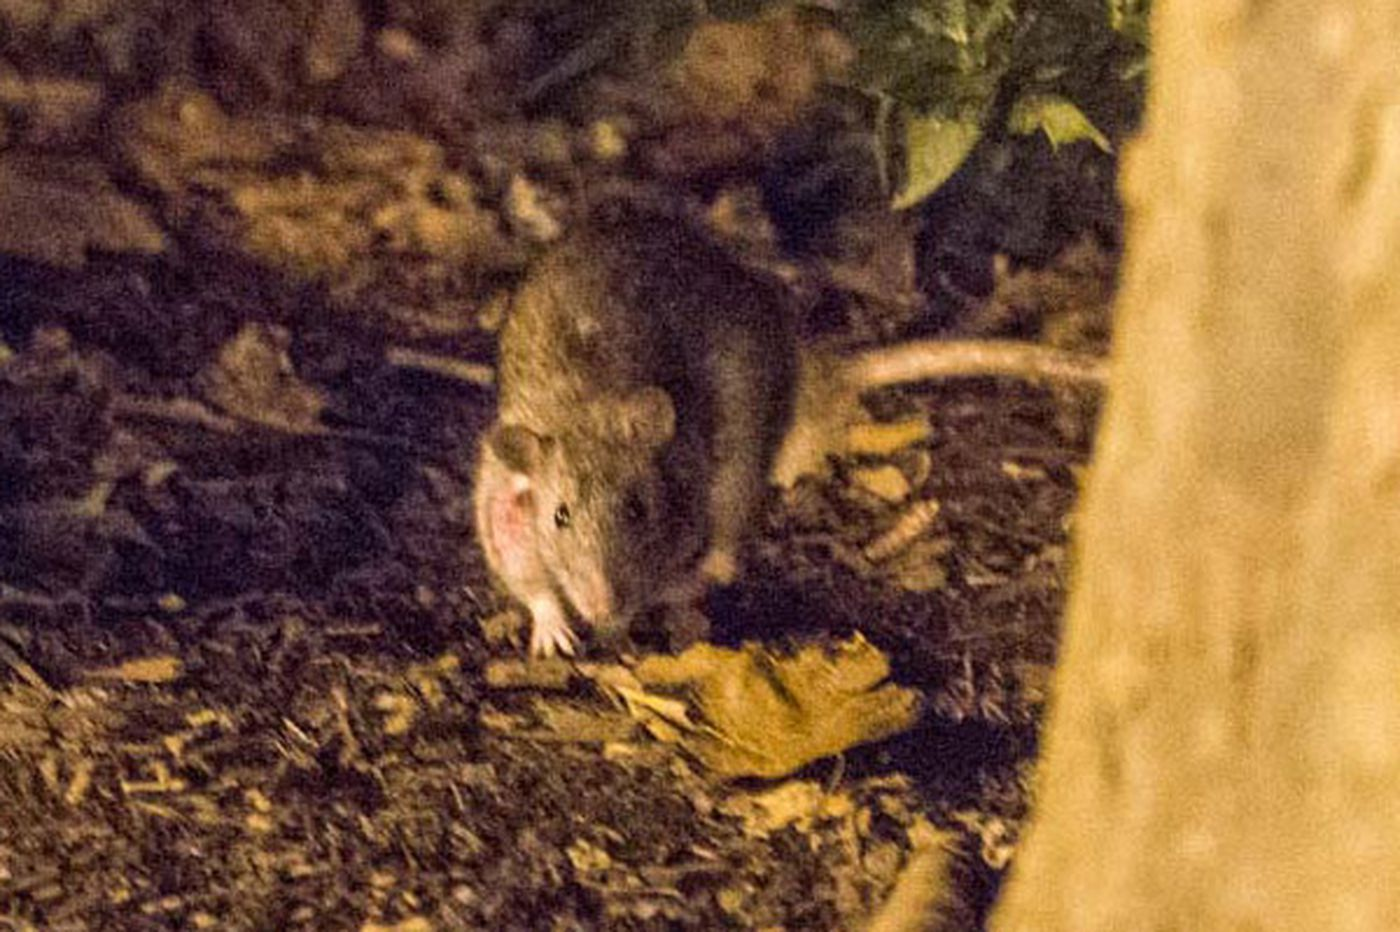 Rats living large in Rittenhouse Square